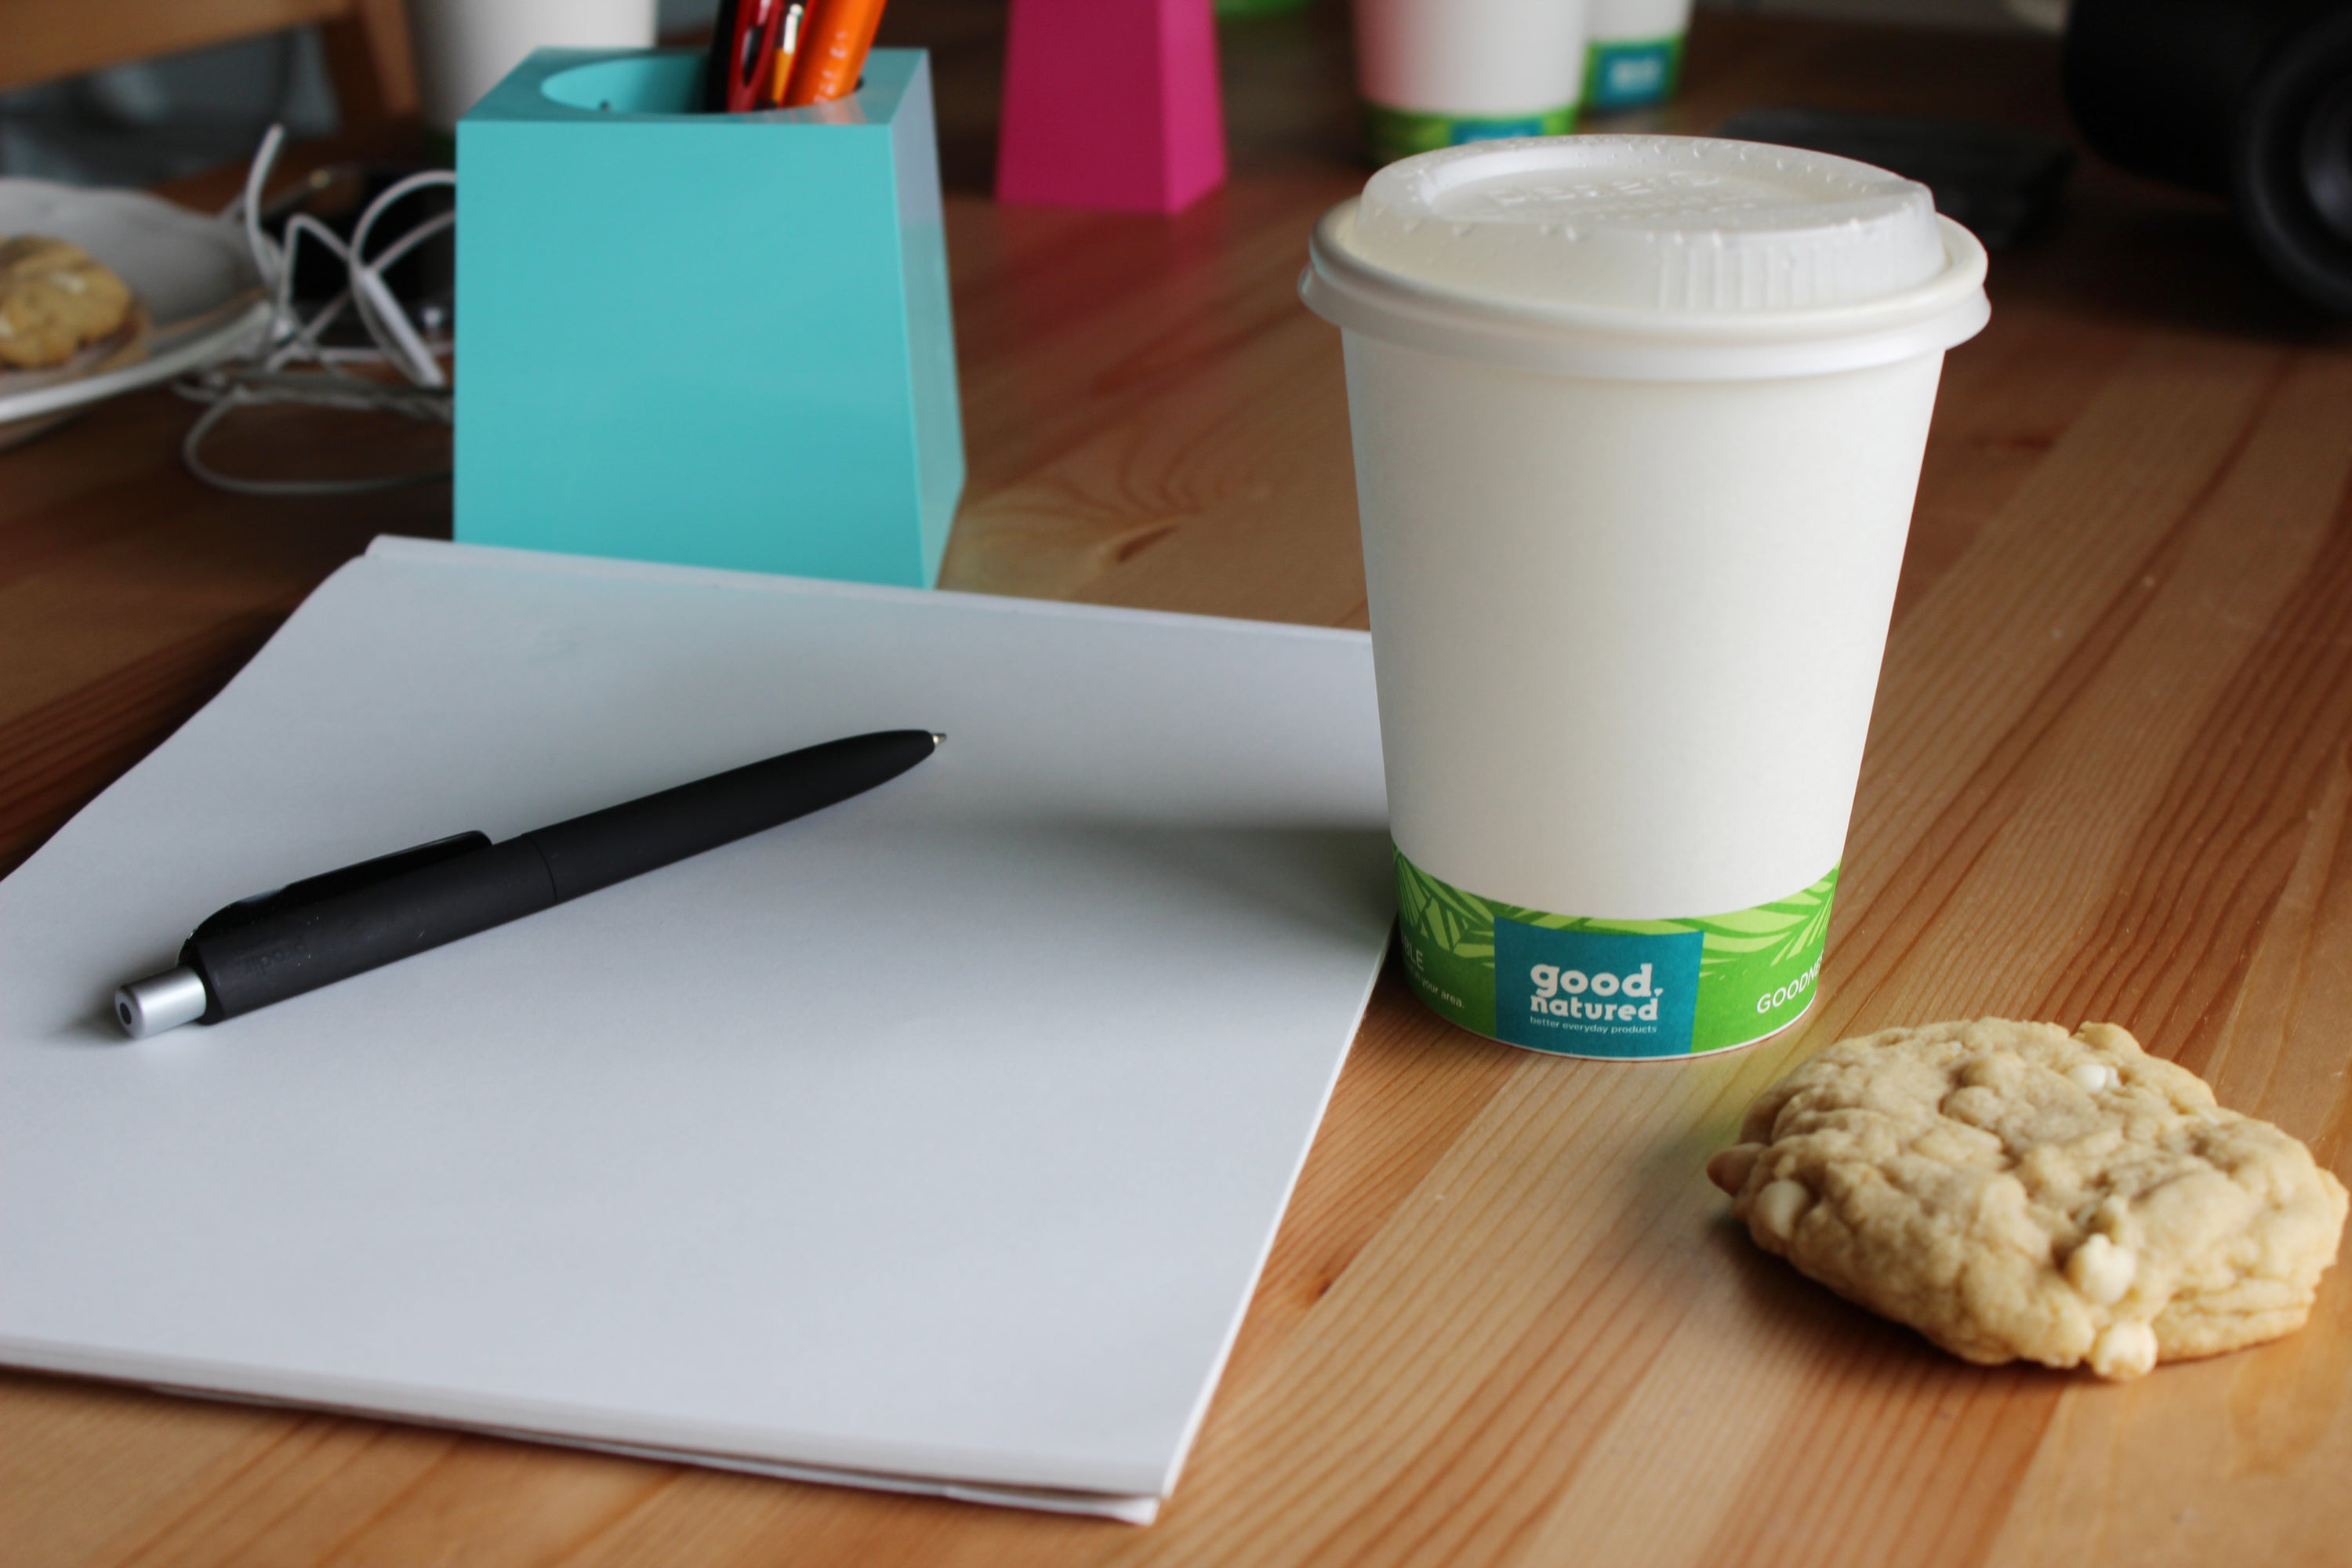 compostable coffee cup with compostable lid at desk